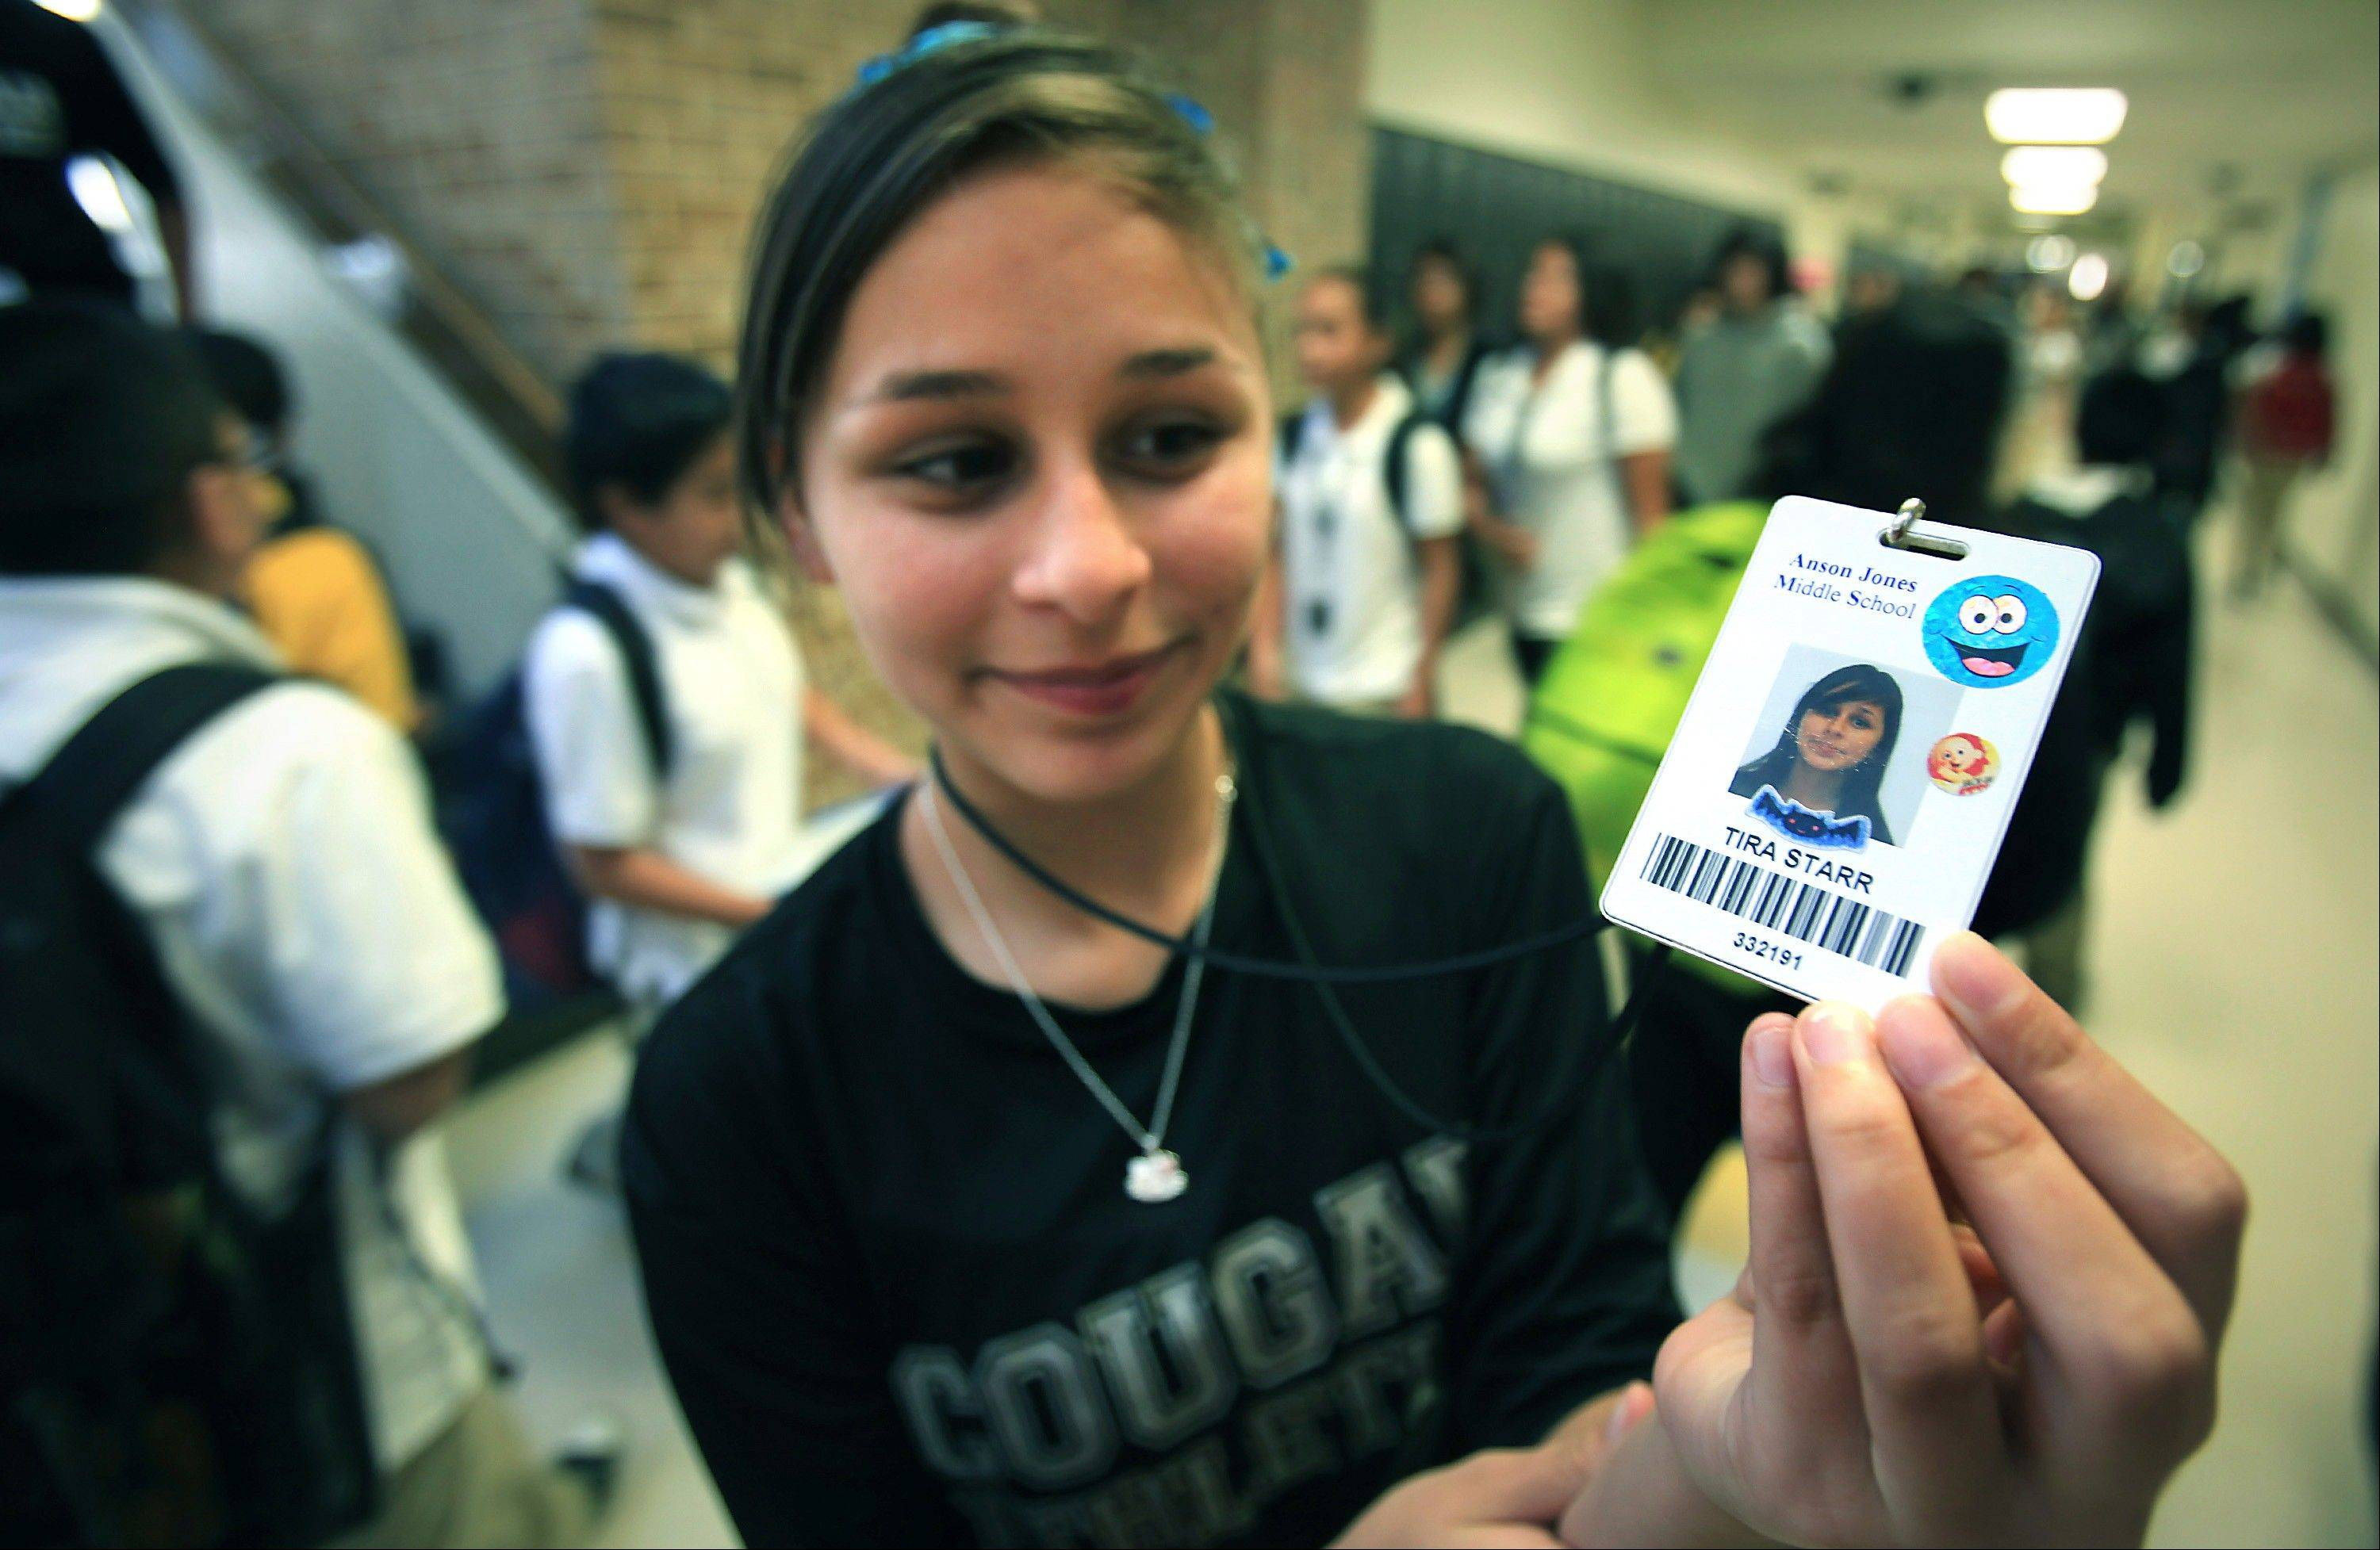 Tira Starr, an 8th grader at Anson Jones Middle School, shows her ID badge as students change classes in San Antonio, Texas. All students at the school are required to carry identification cards embedded with a microchip. They are tracked by the dozens of electronic readers installed in the schools� ceiling panels.